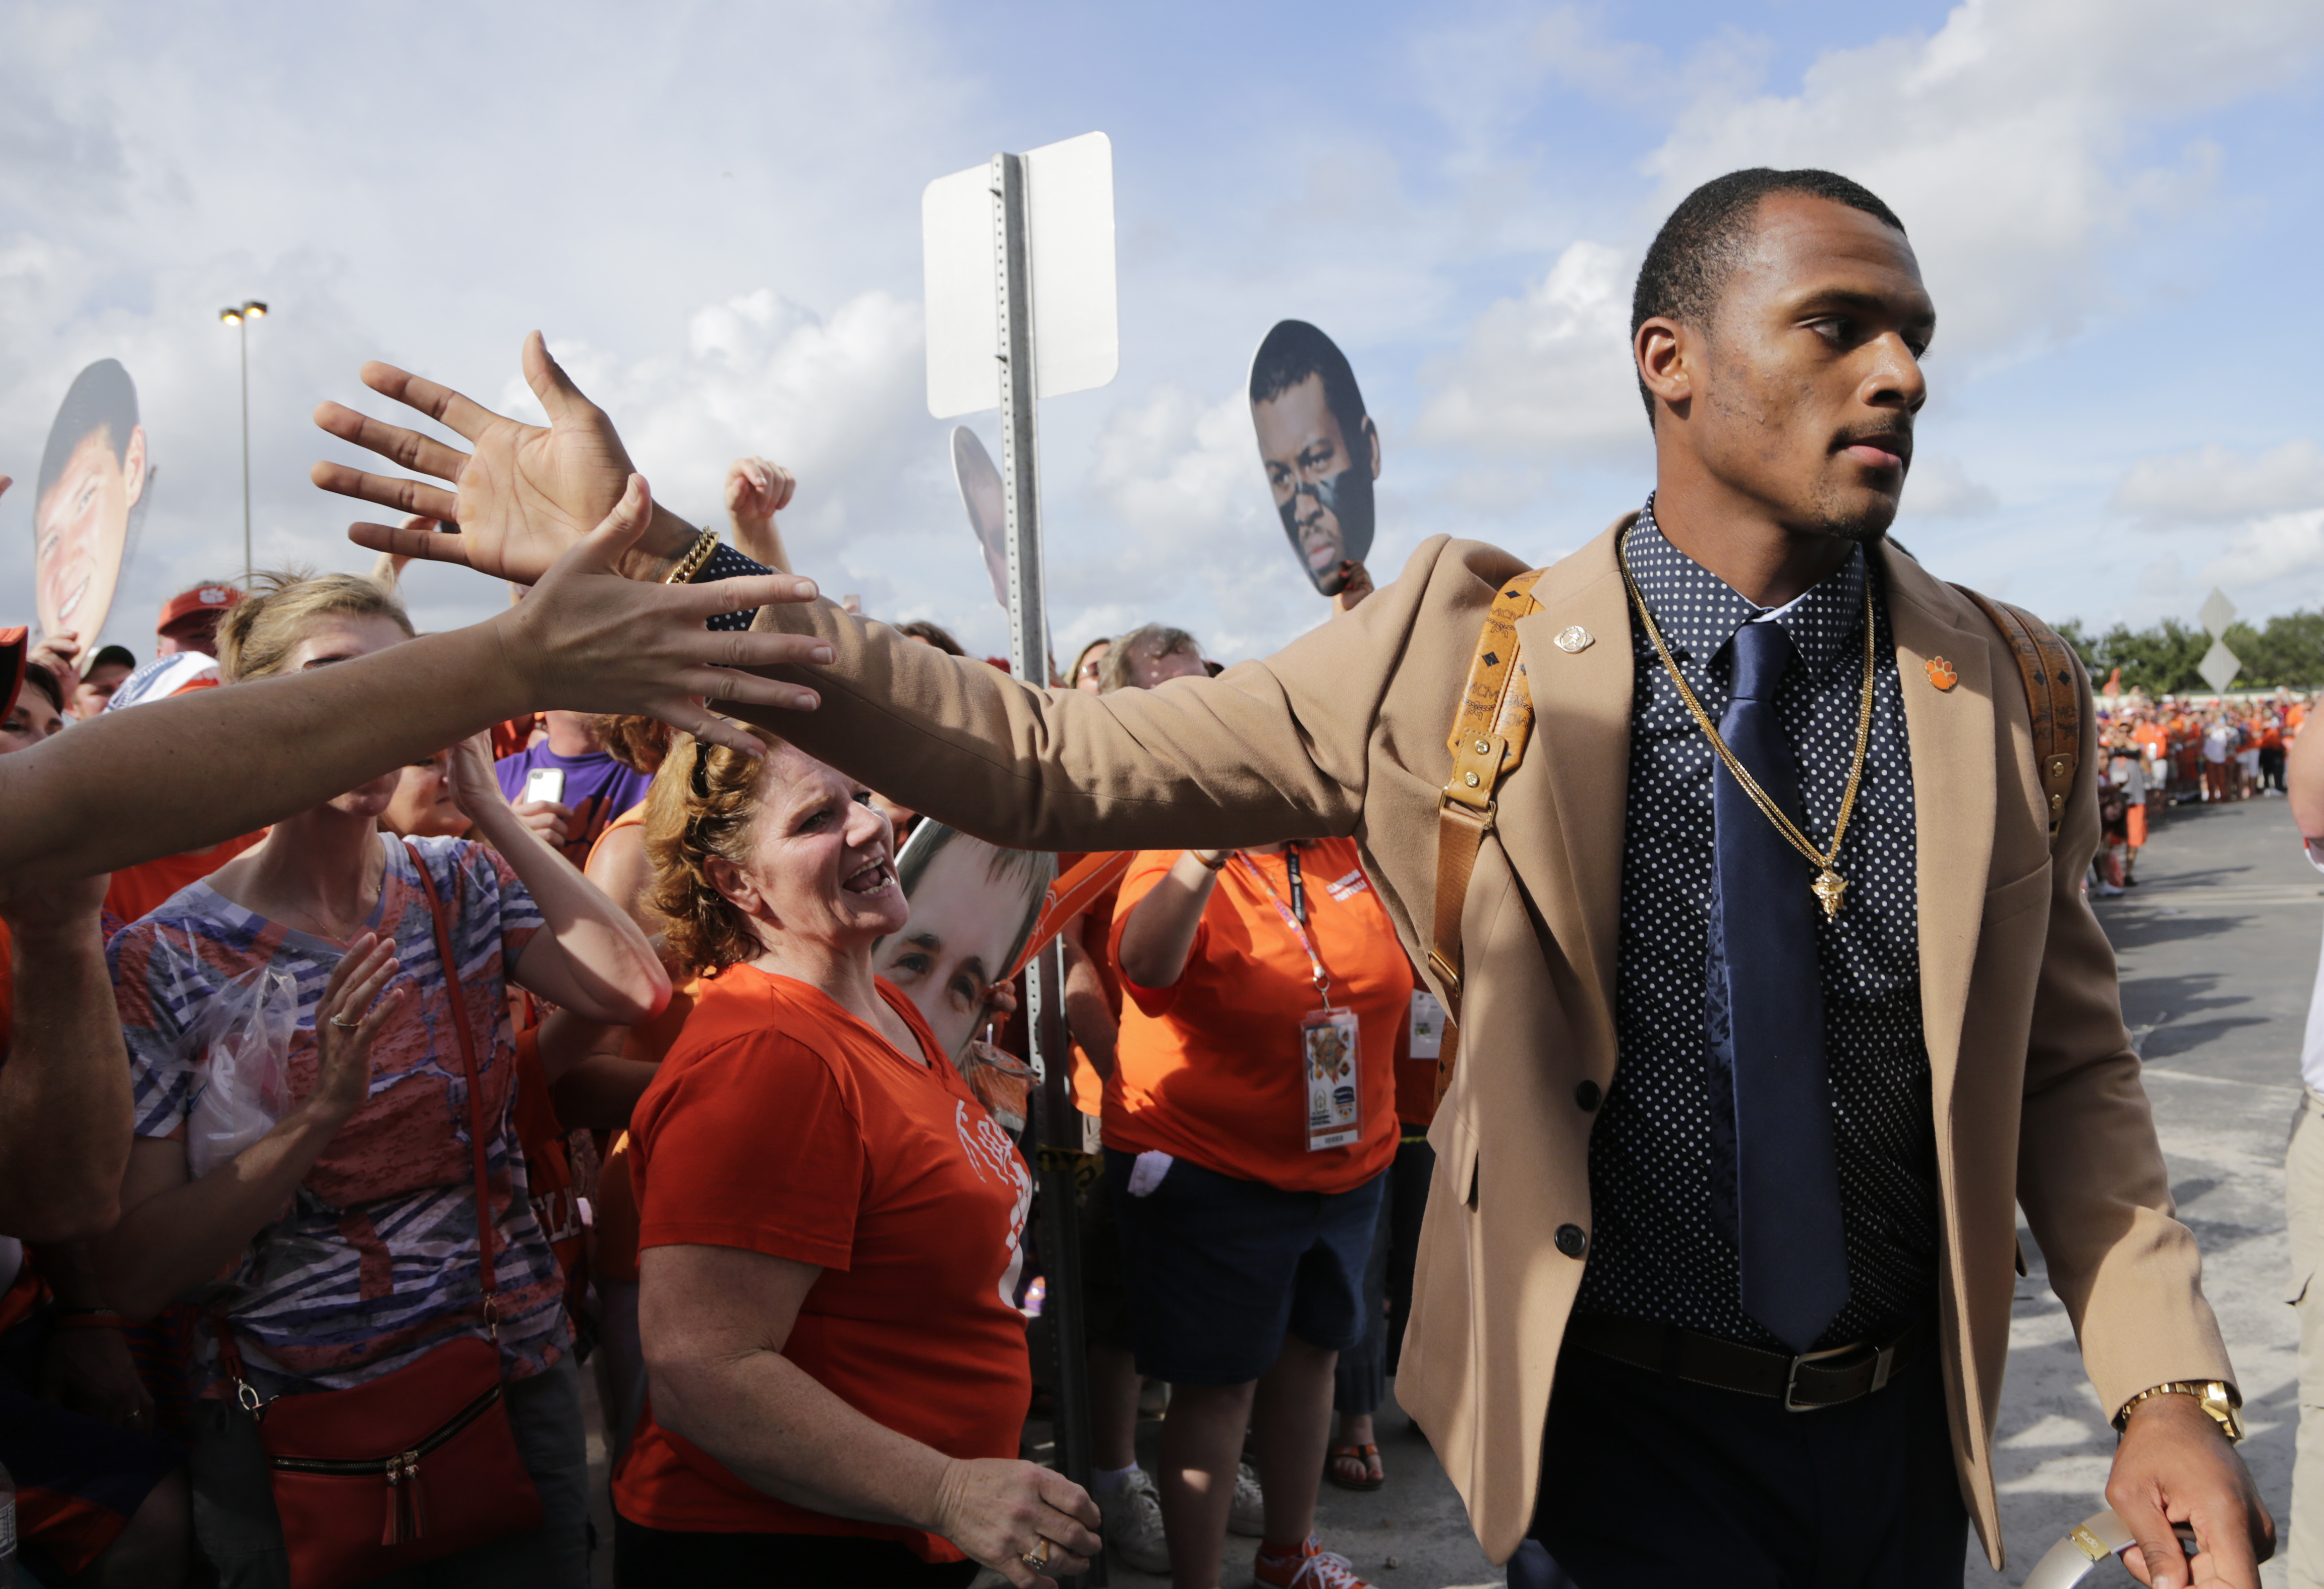 Clemson quarterback Deshaun Watson greets a fan as he arrives for the Orange Bowl NCAA college football semifinal playoff game against Oklahoma, Thursday, Dec. 31, 2015, in Miami Gardens, Fla. (AP Photo/Lynne Sladky)